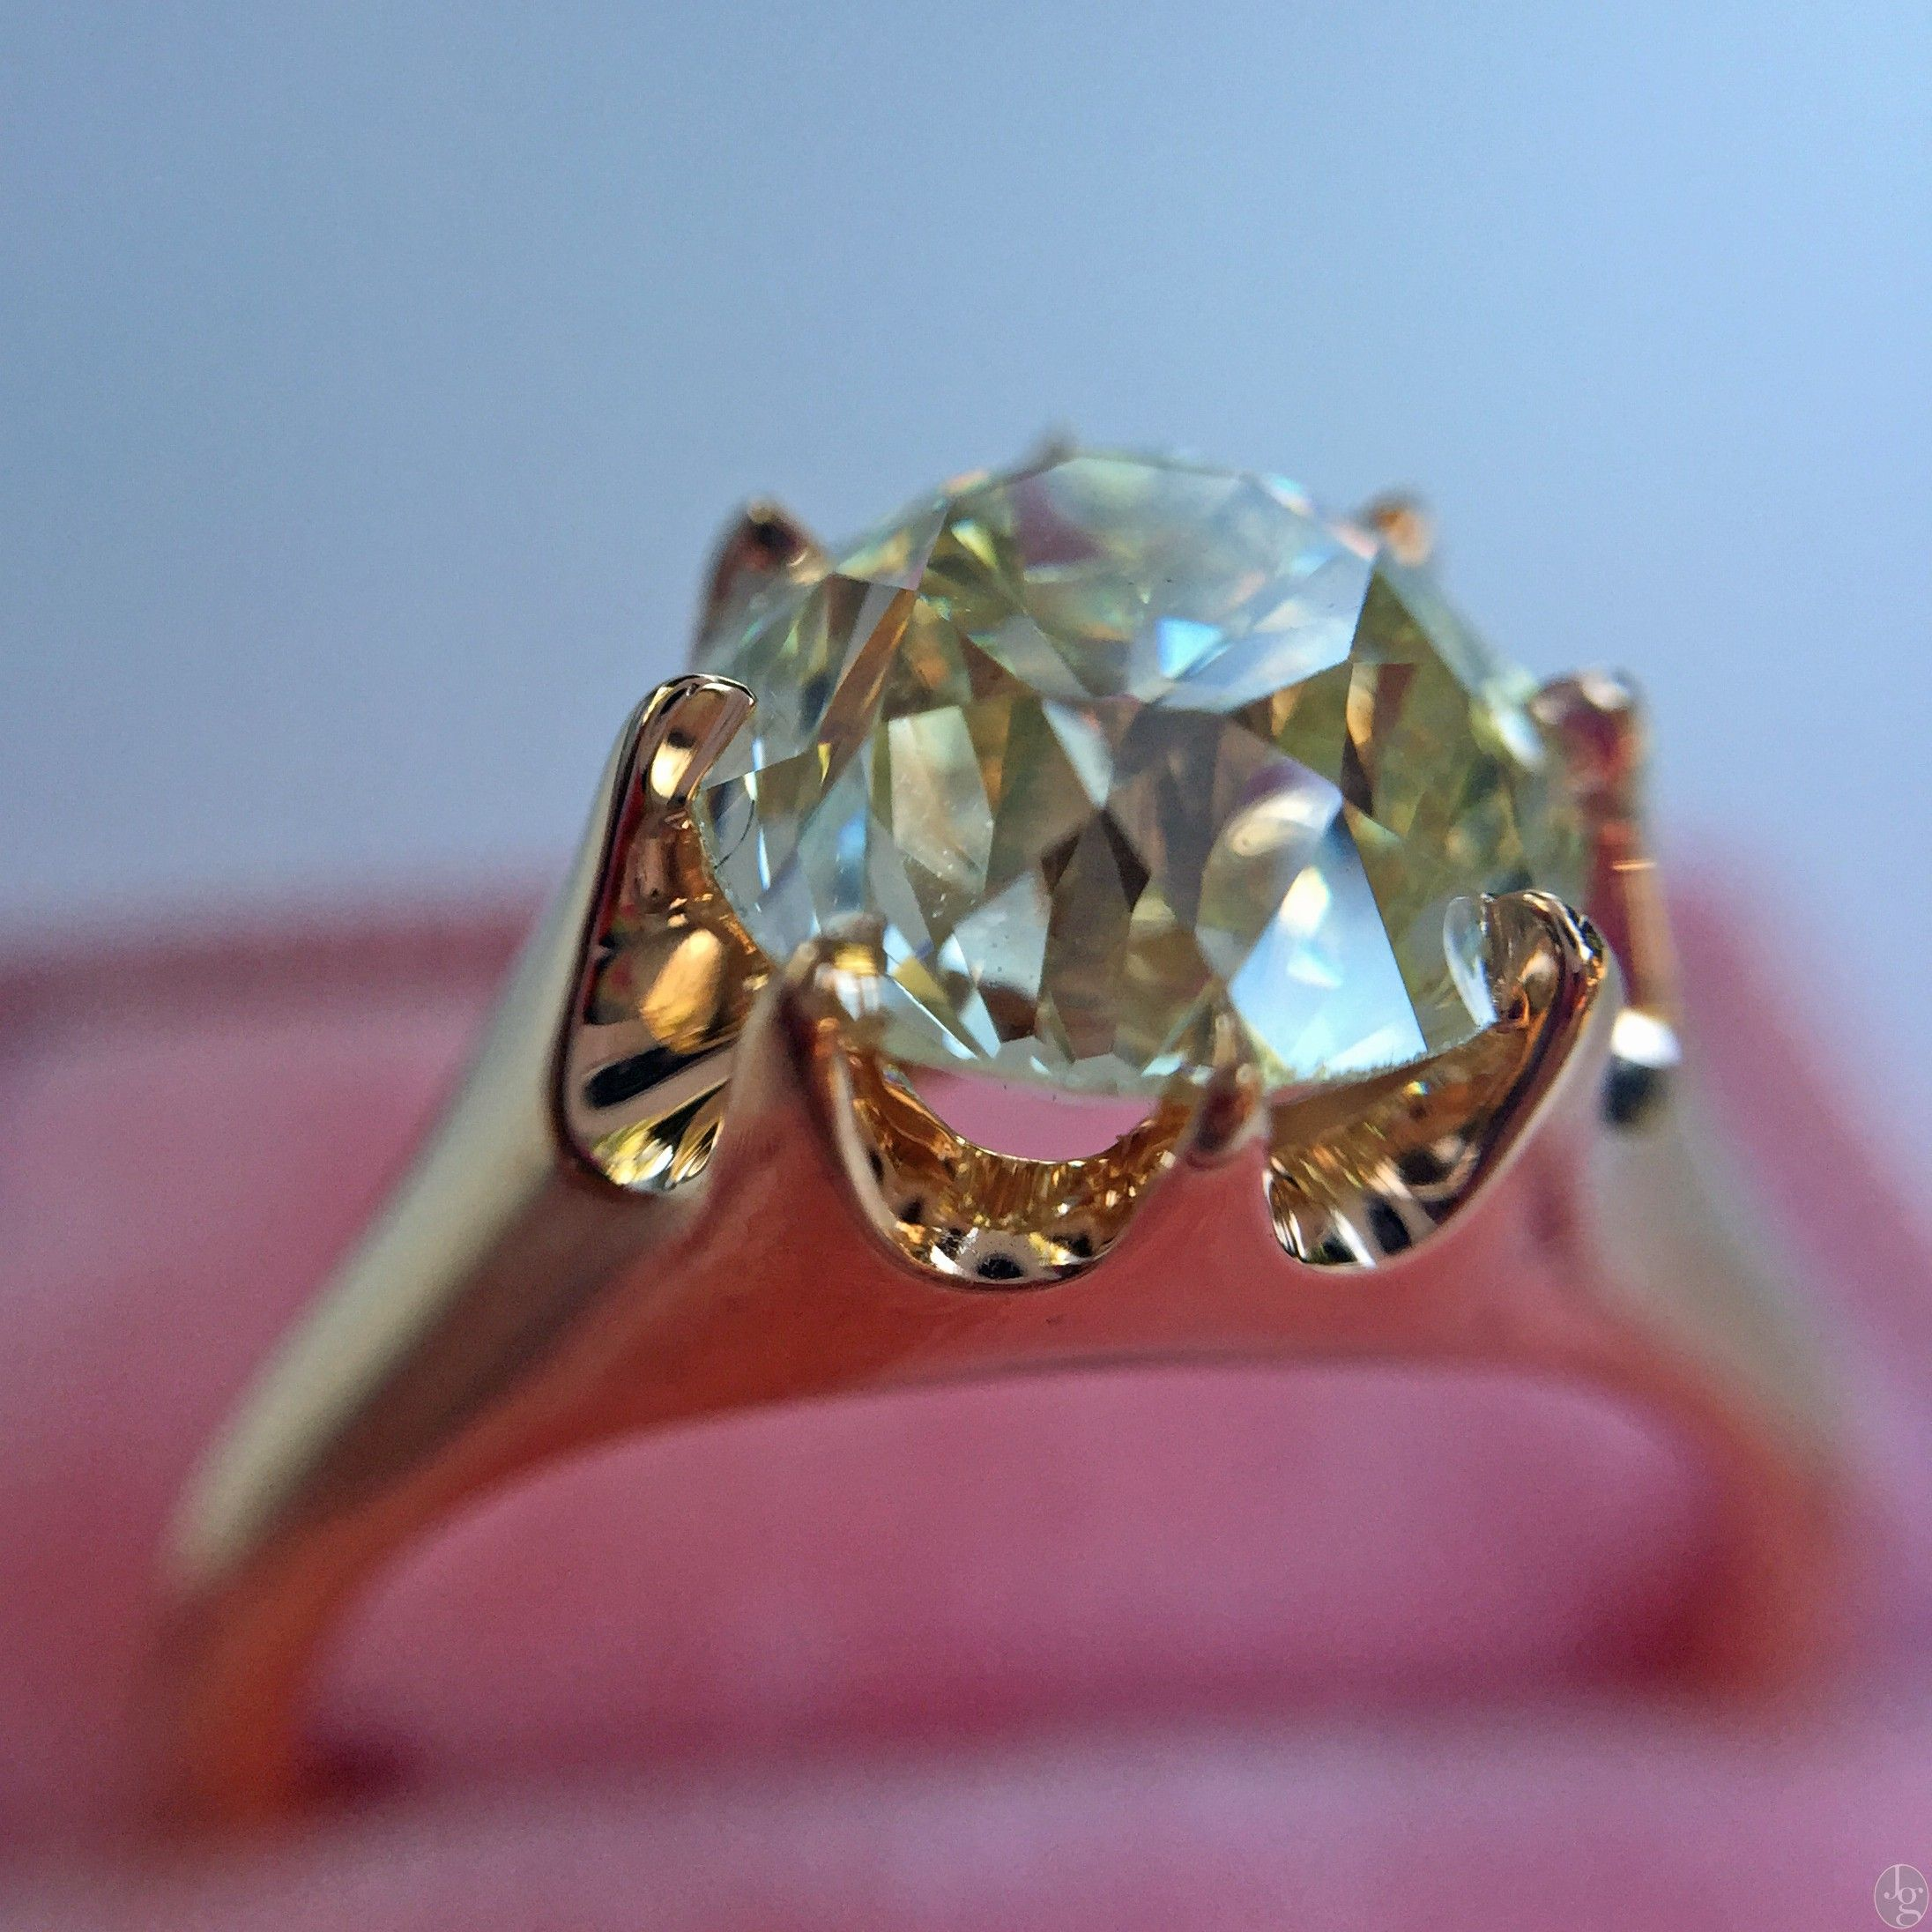 products gold ring century mine carat diamond cut antique engagement with old victorian rings rose